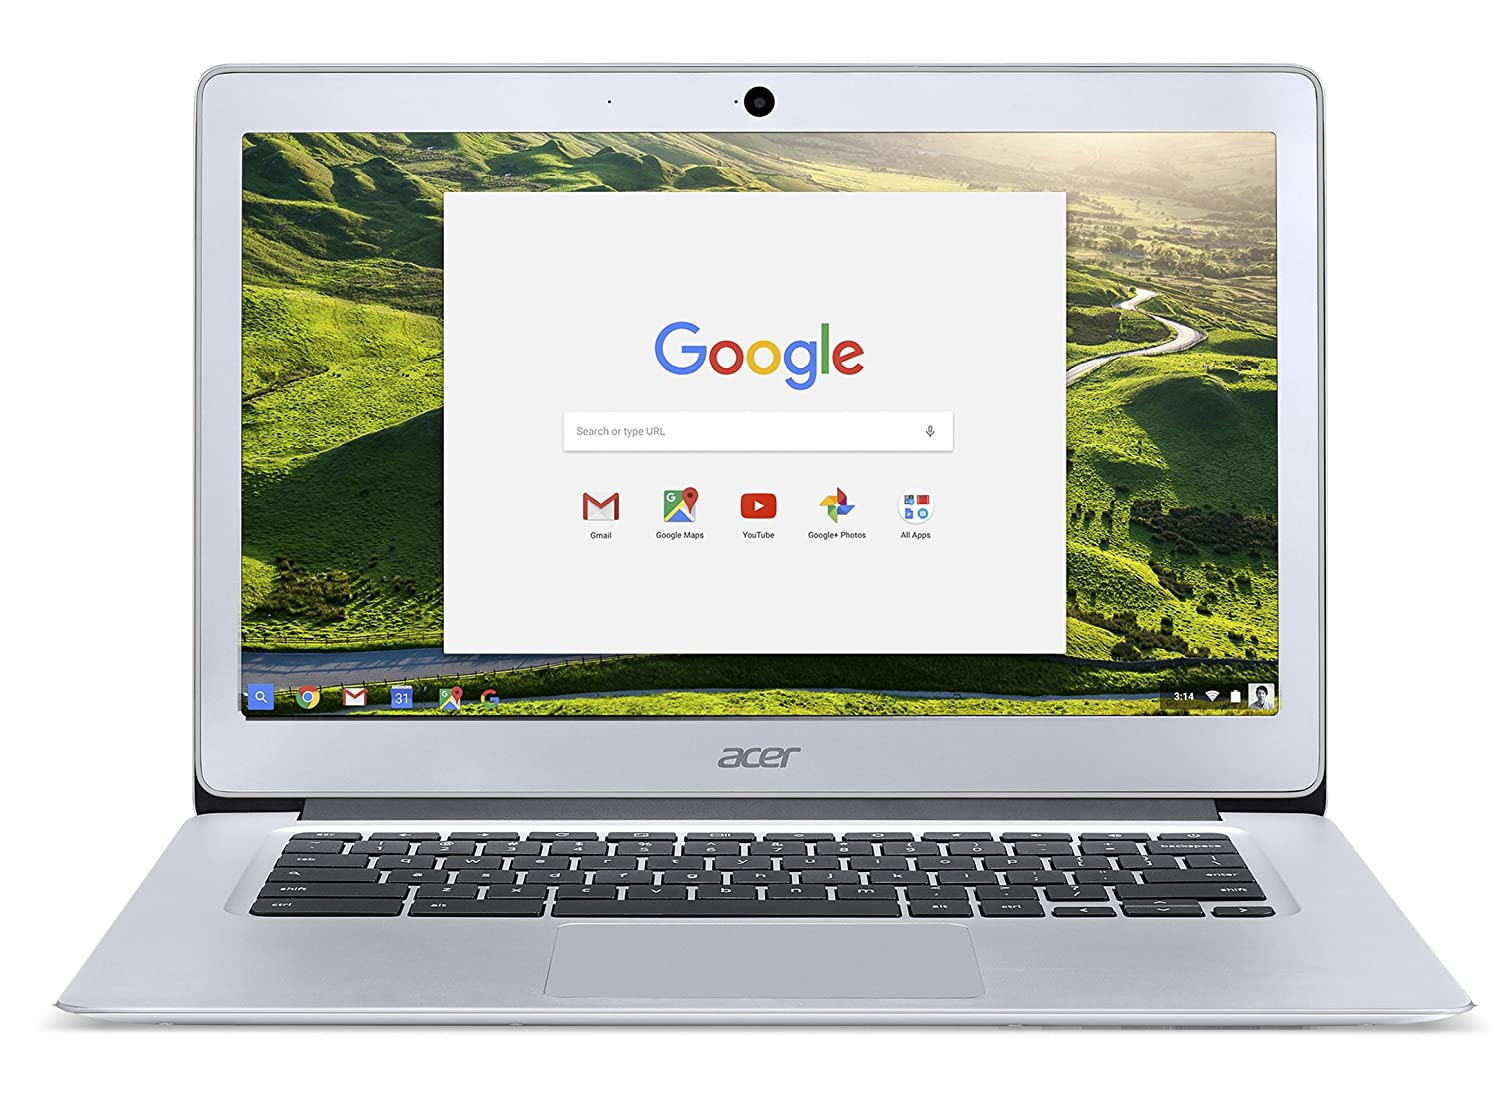 Acer Chromebook 14, Aluminum Chassis, 14-inch Full HD, Intel Celeron N3060, 4GB LPDDR3, 32GB, Chrome CB3-431-C5XK